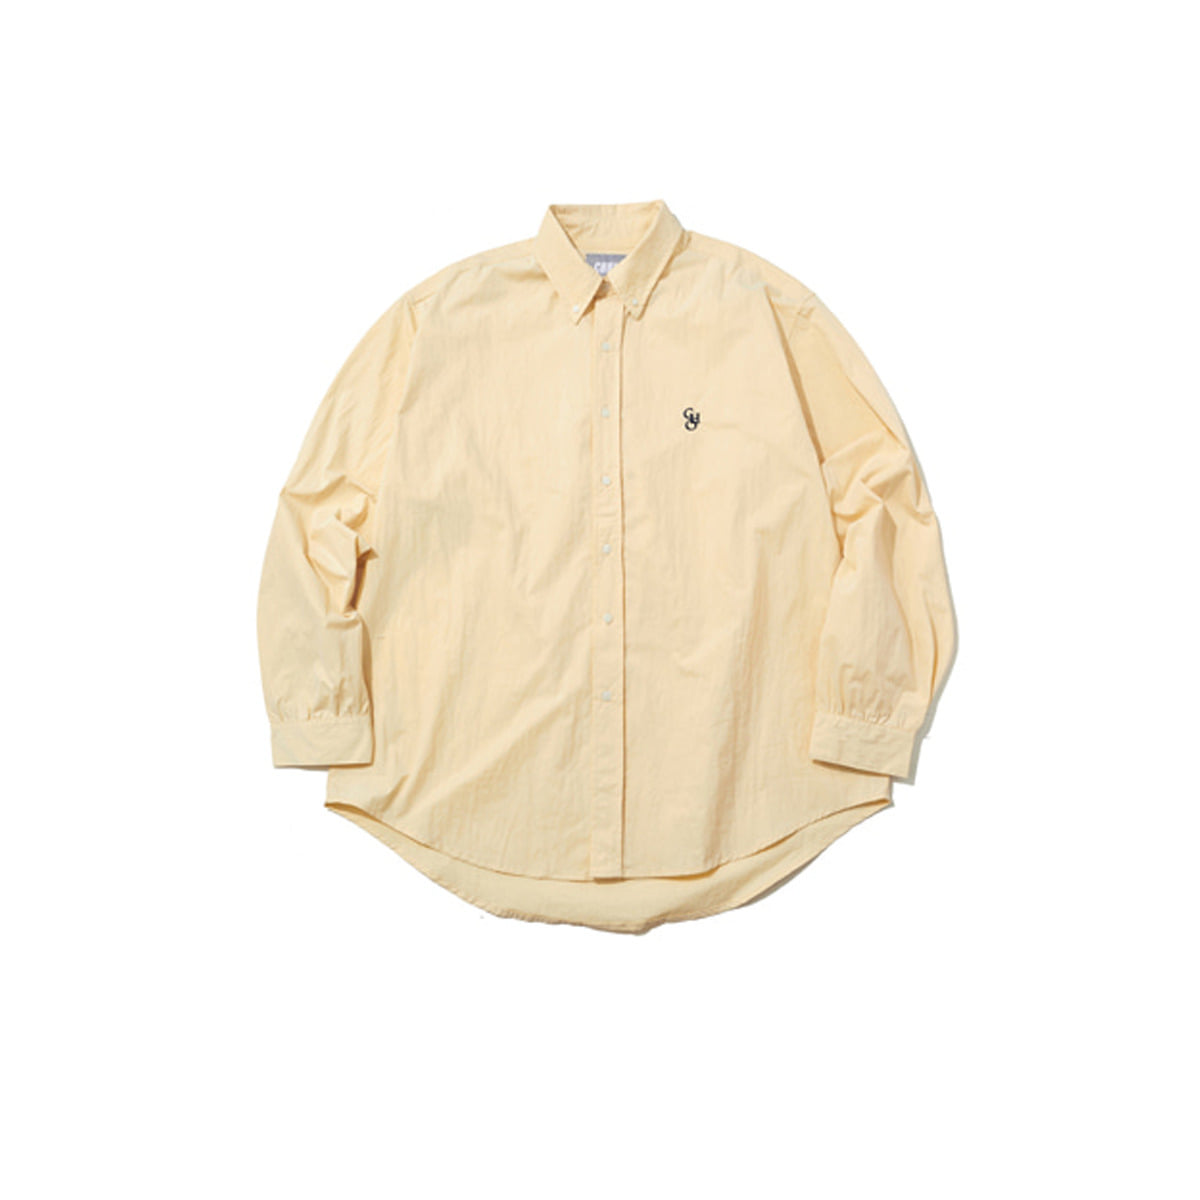 Cotton Loose Fit Shirt, Beige